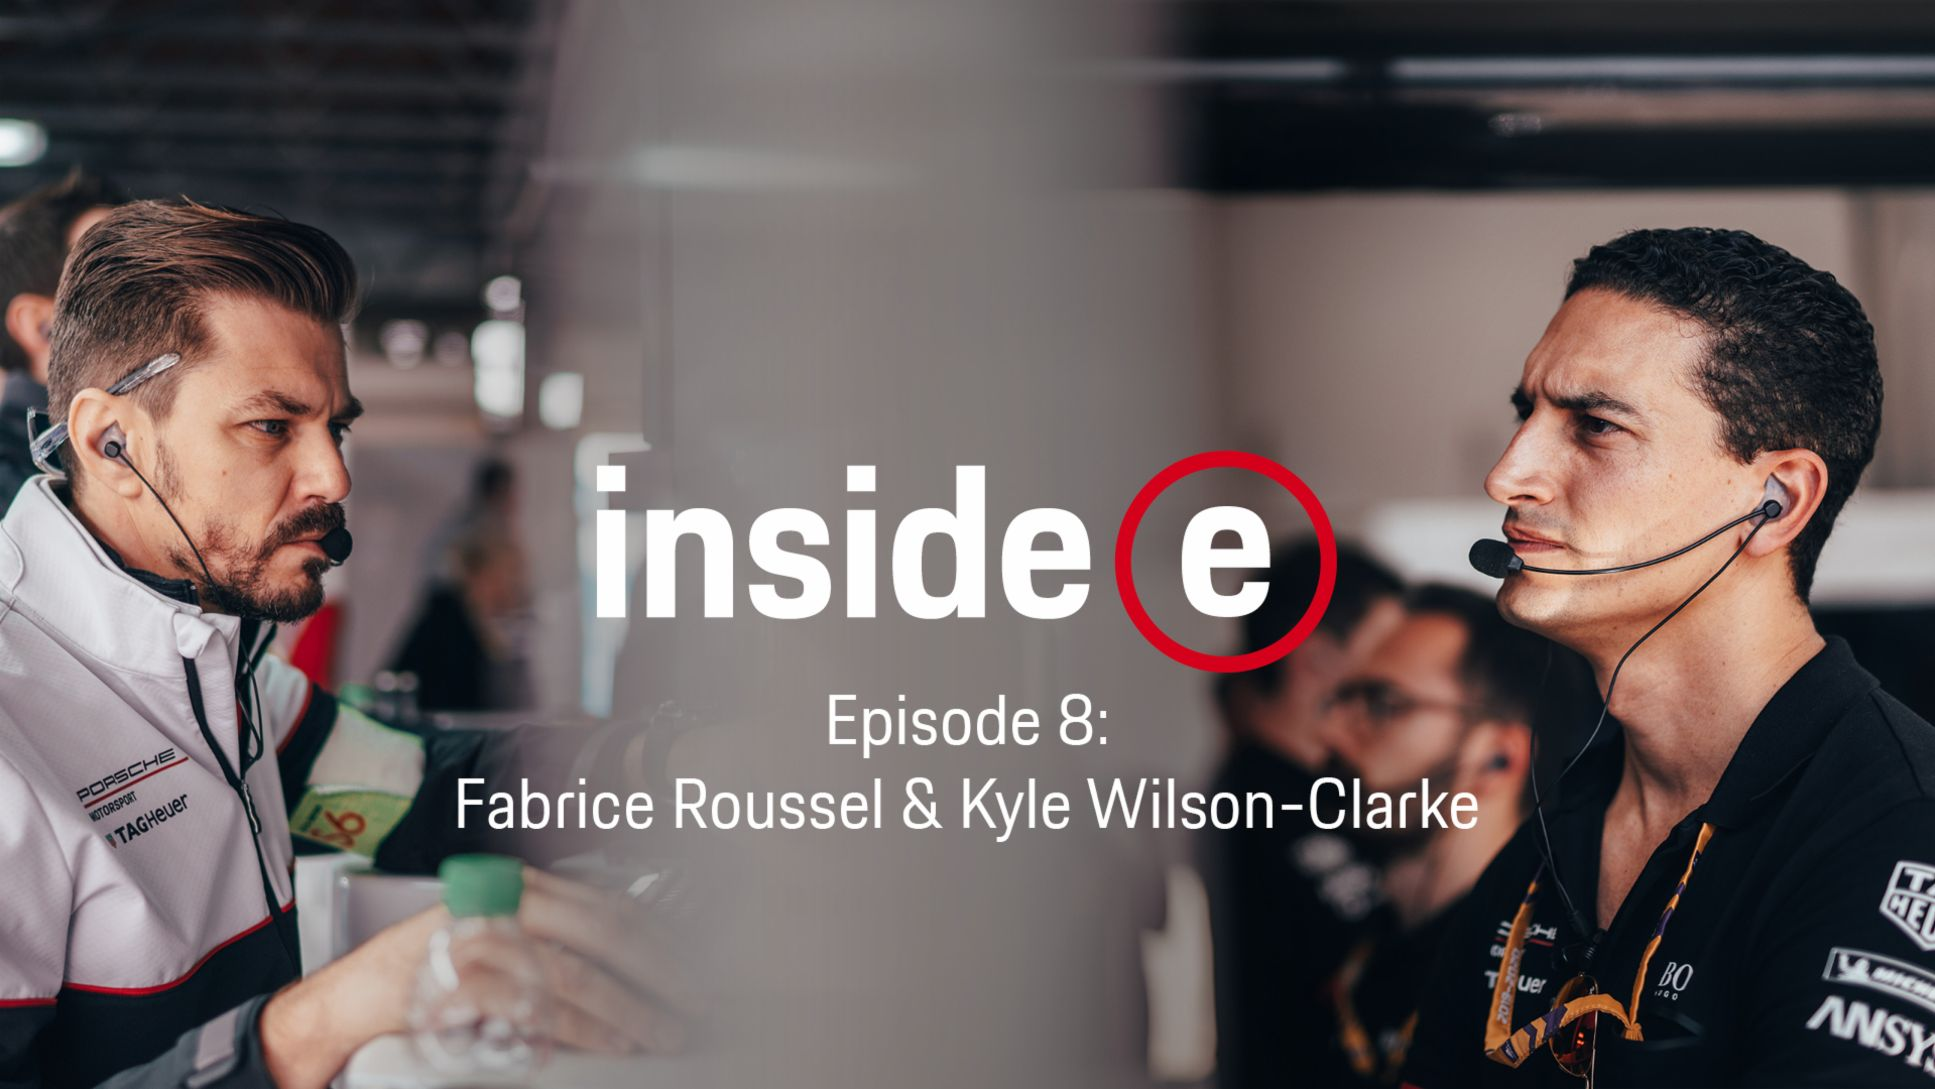 """Inside E"" podcast, episode 8 with Fabrice Roussel and Kyle Wilson-Clarke, l-r, 2020, Porsche AG"